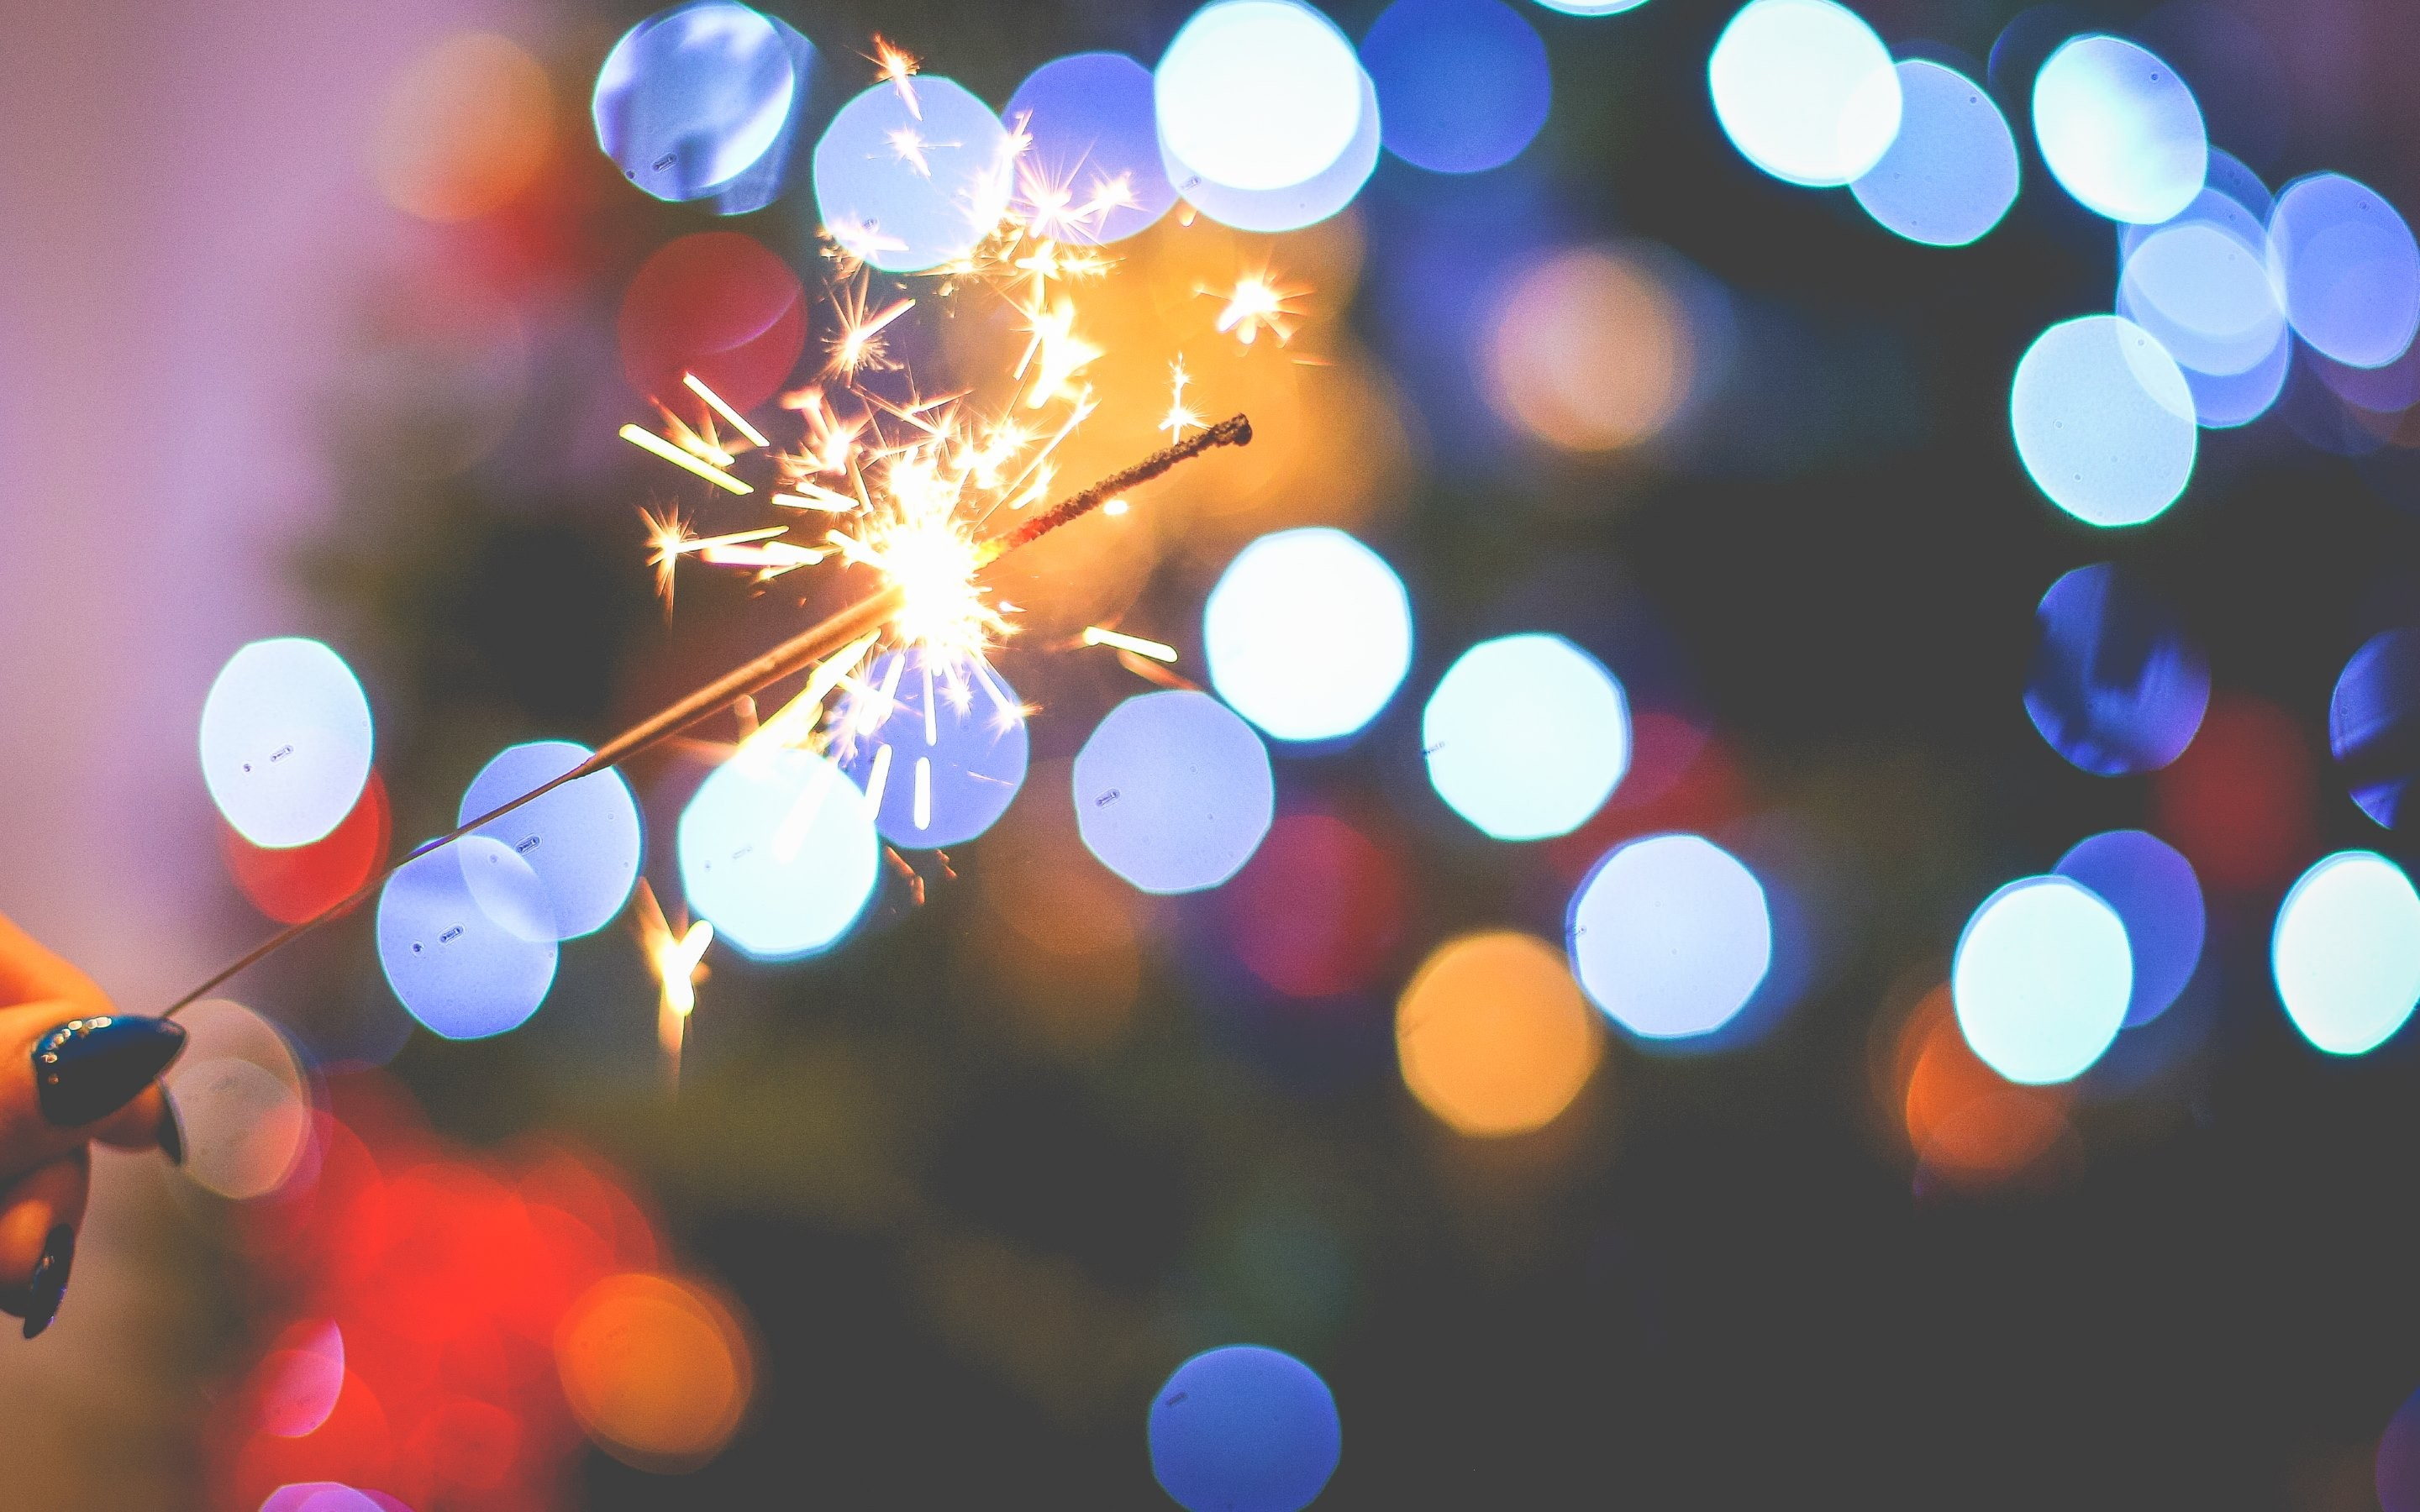 New Years Eve Background Download Free Stunning Hd Wallpapers